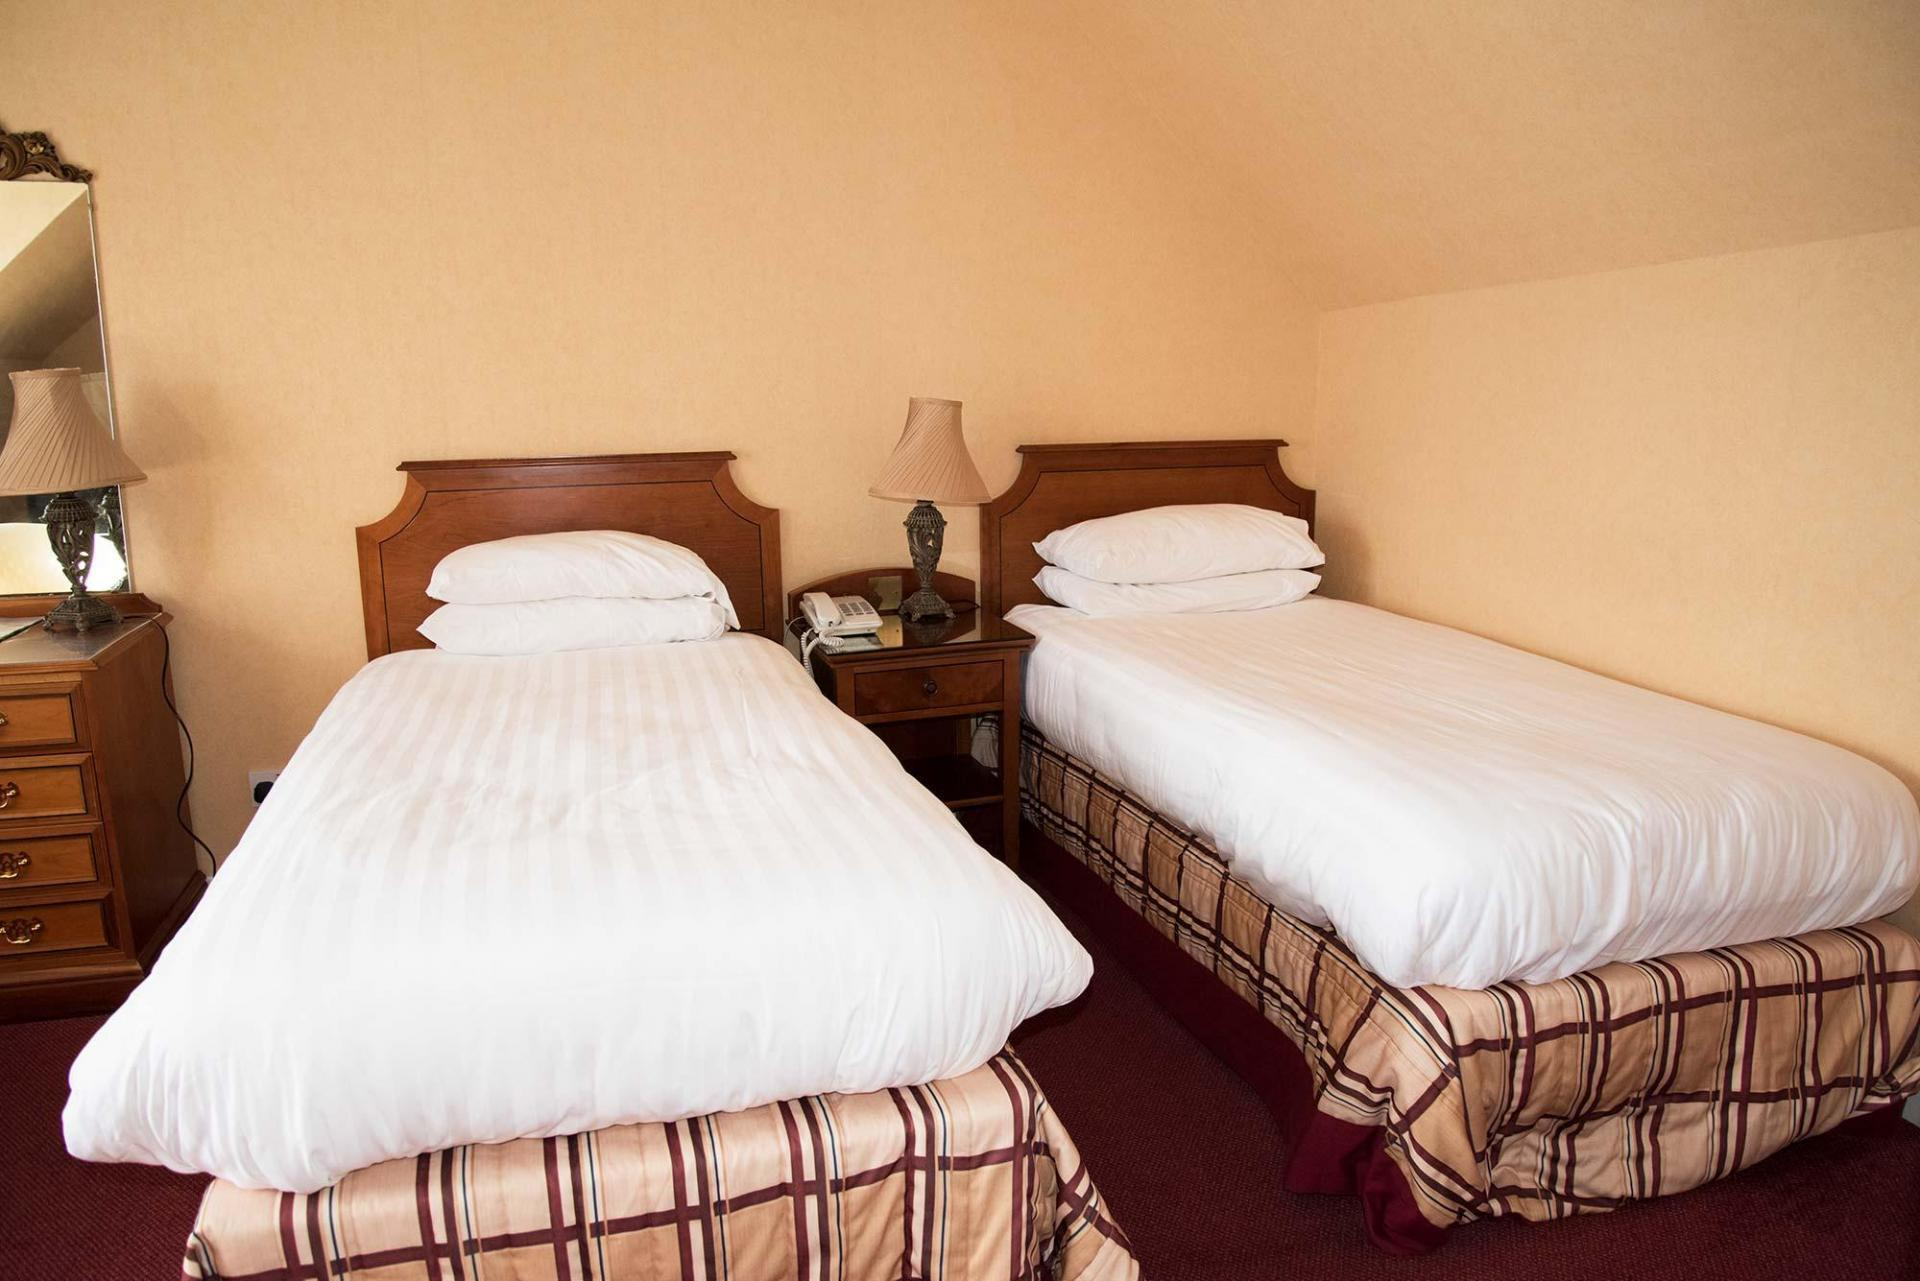 Twin En-suite Room Ground Floor in annexe building,approx 50m from the main hotel, restrictedvie